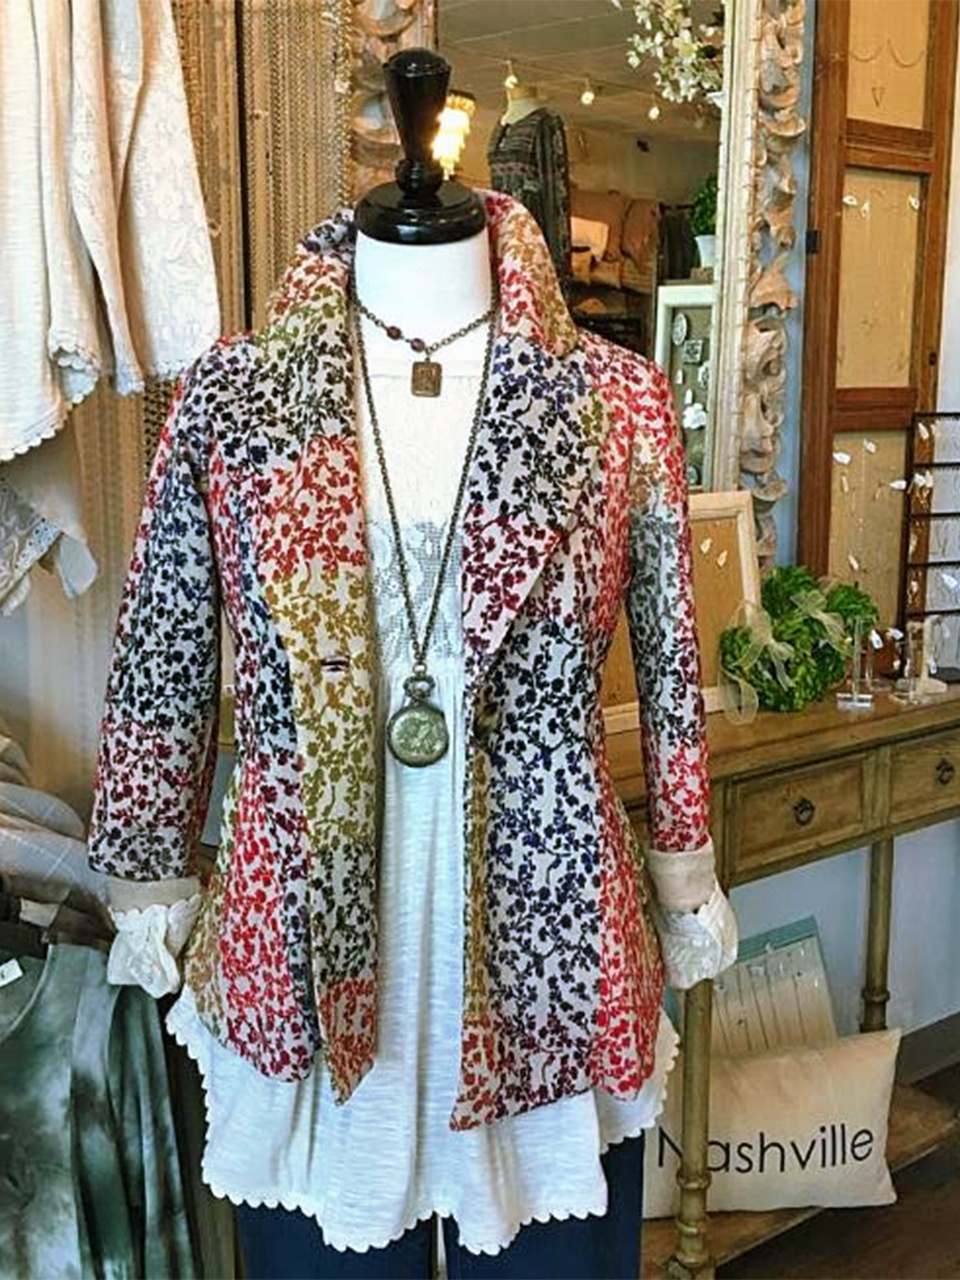 Florals can still be perfect for fall - just in the right colors!